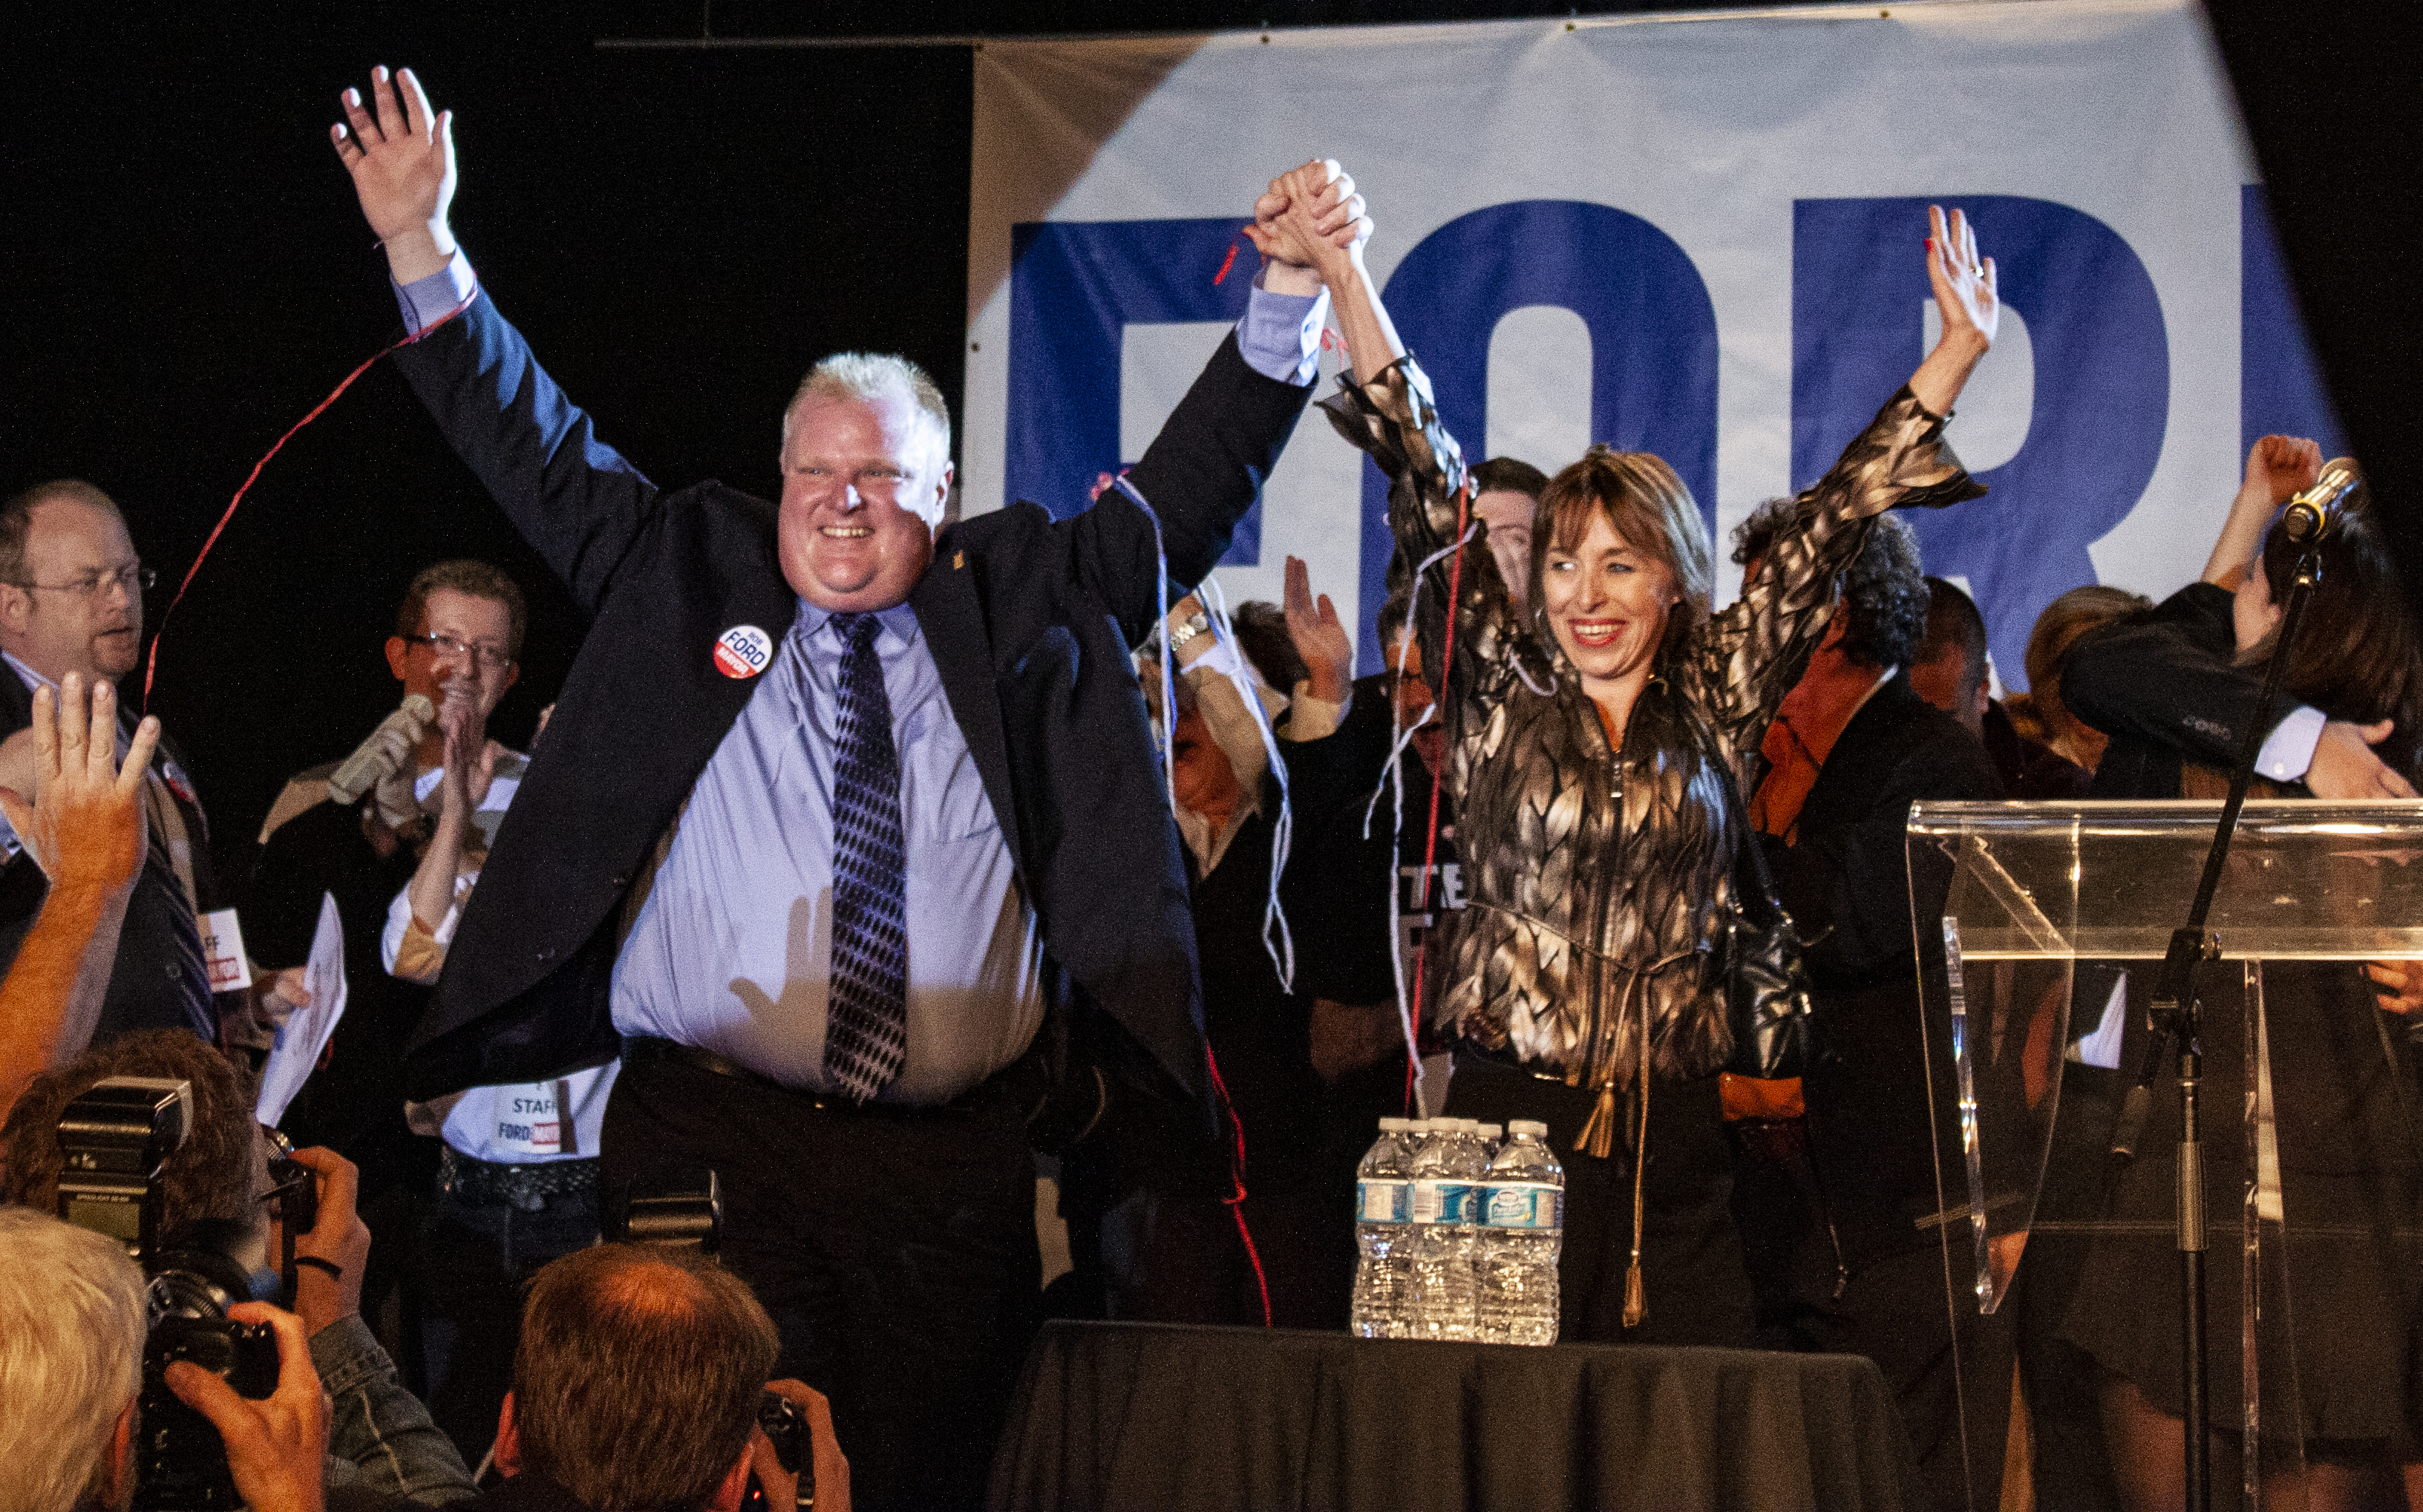 Mayor-elect Rob Ford with his wife, Renata, shortly before he gave his victory speech in Toronto on Oct. 25, 2010. (Steve Silva)